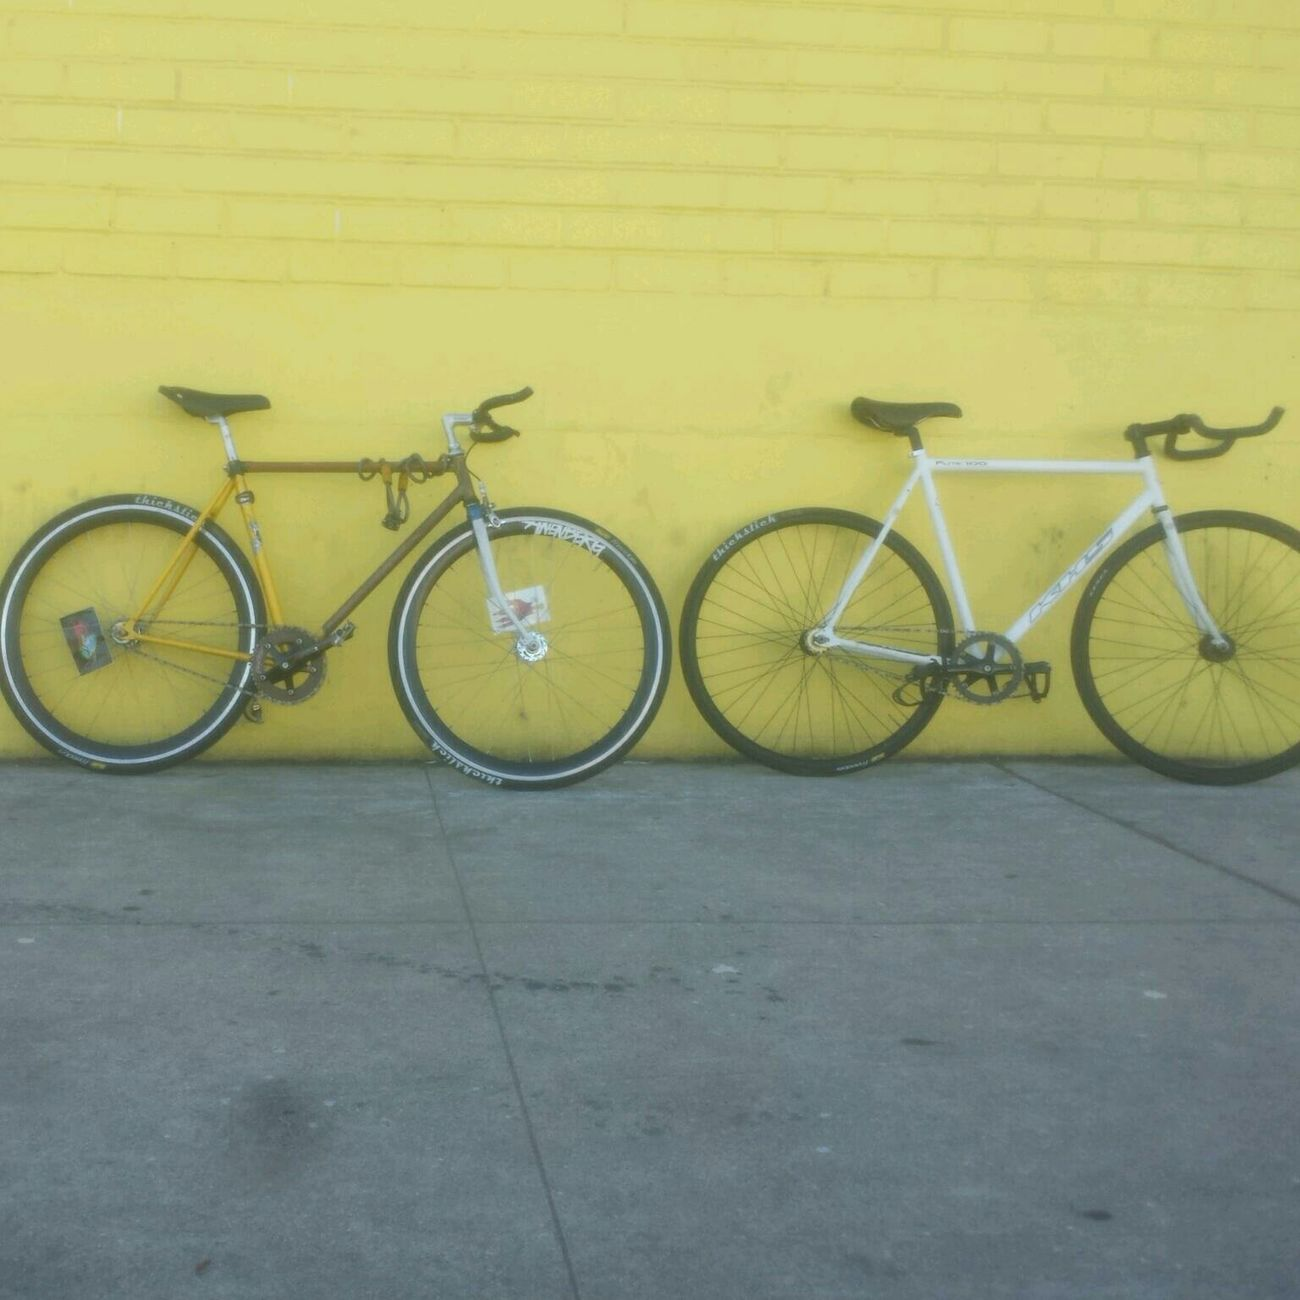 Fixie Dtla Art District CicLAVia All4theride